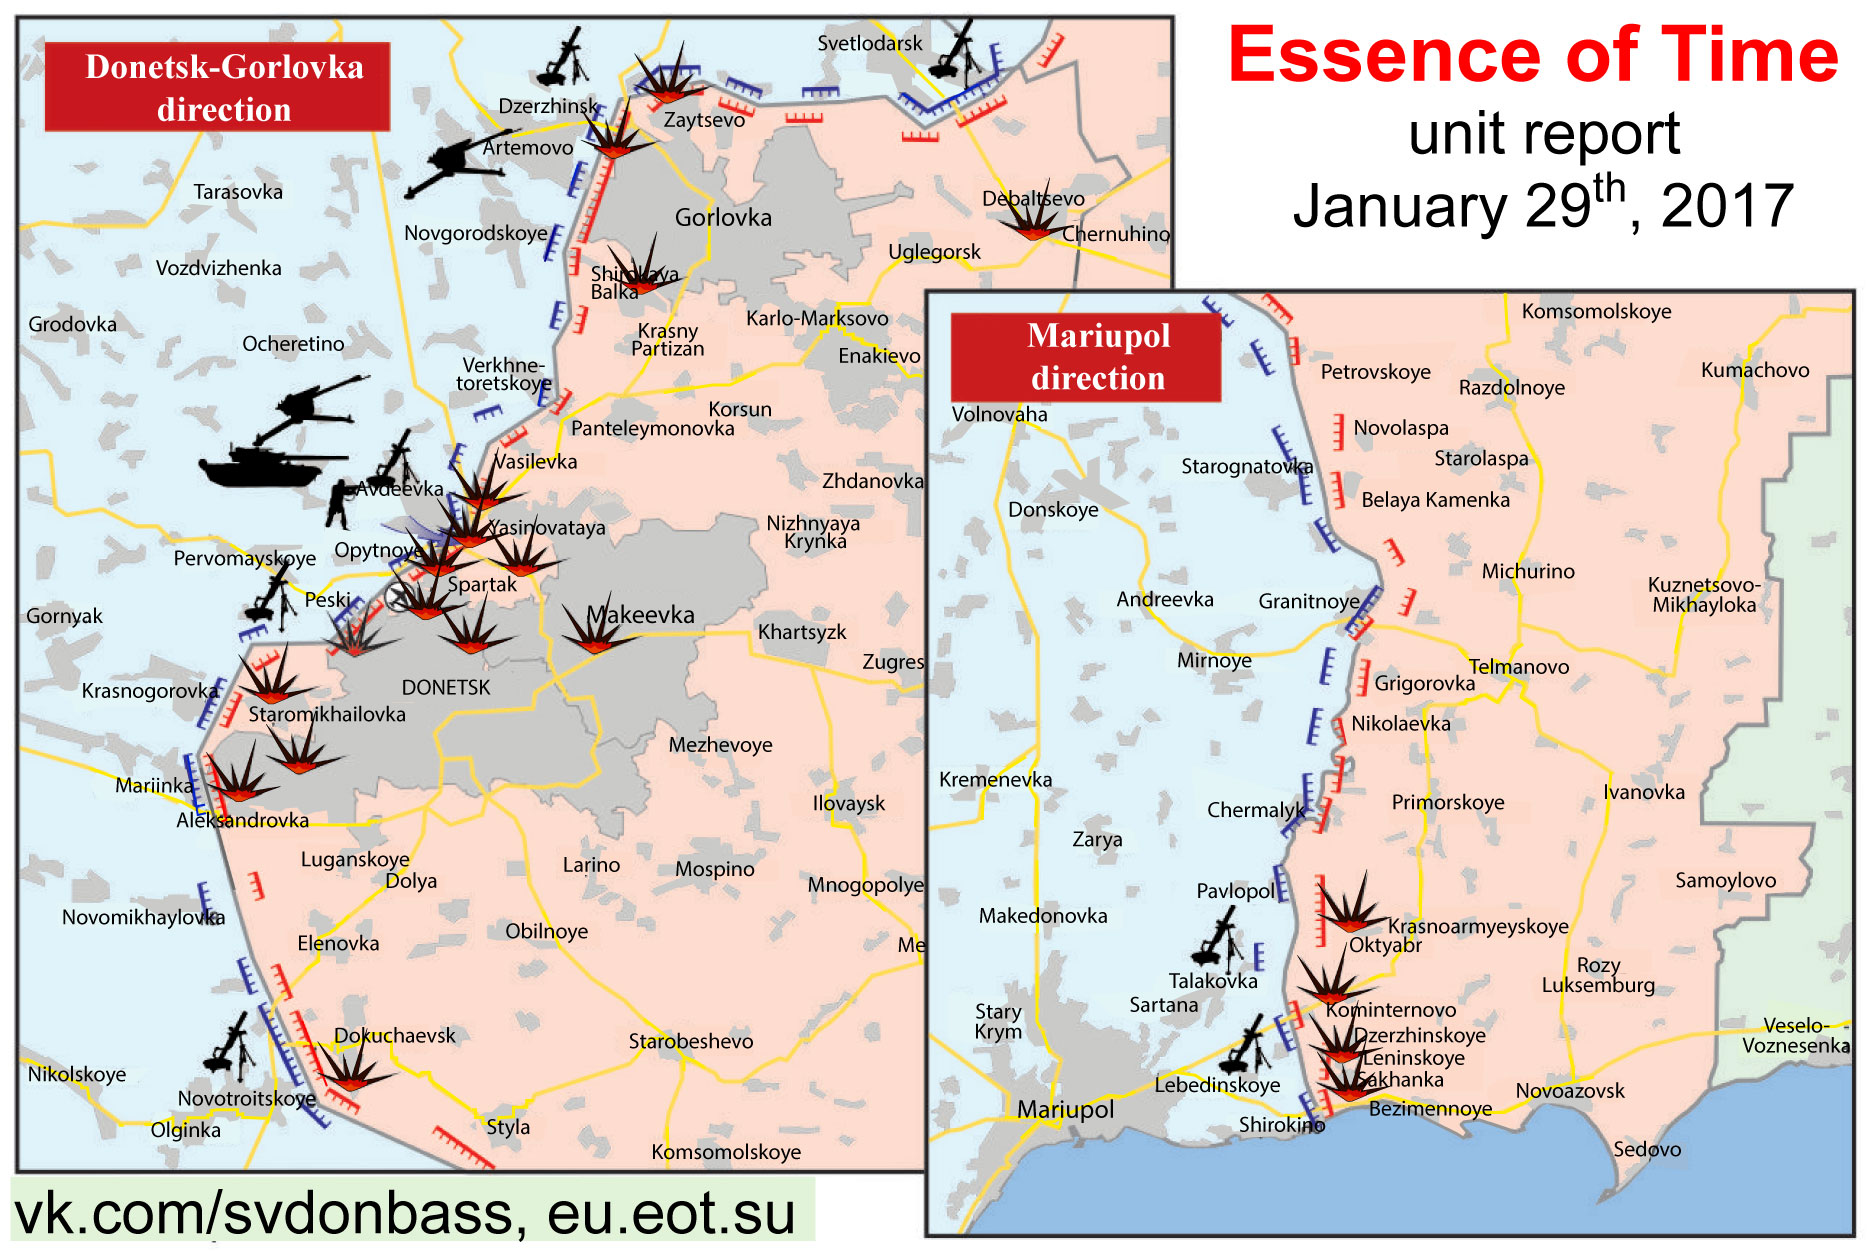 January 29 Essence of Time unit in Donbass situation report with